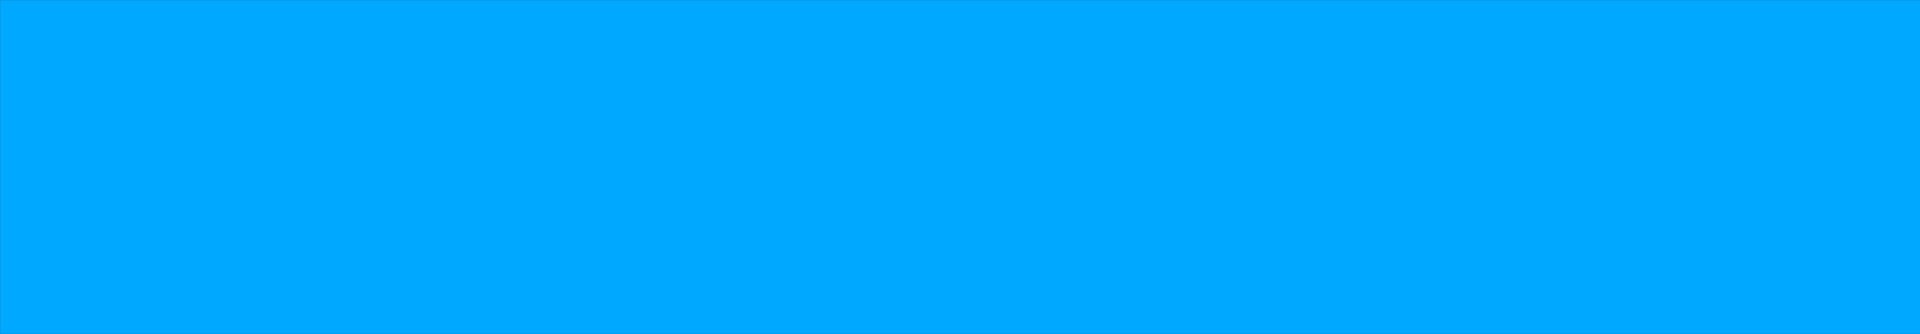 default-bluebanner